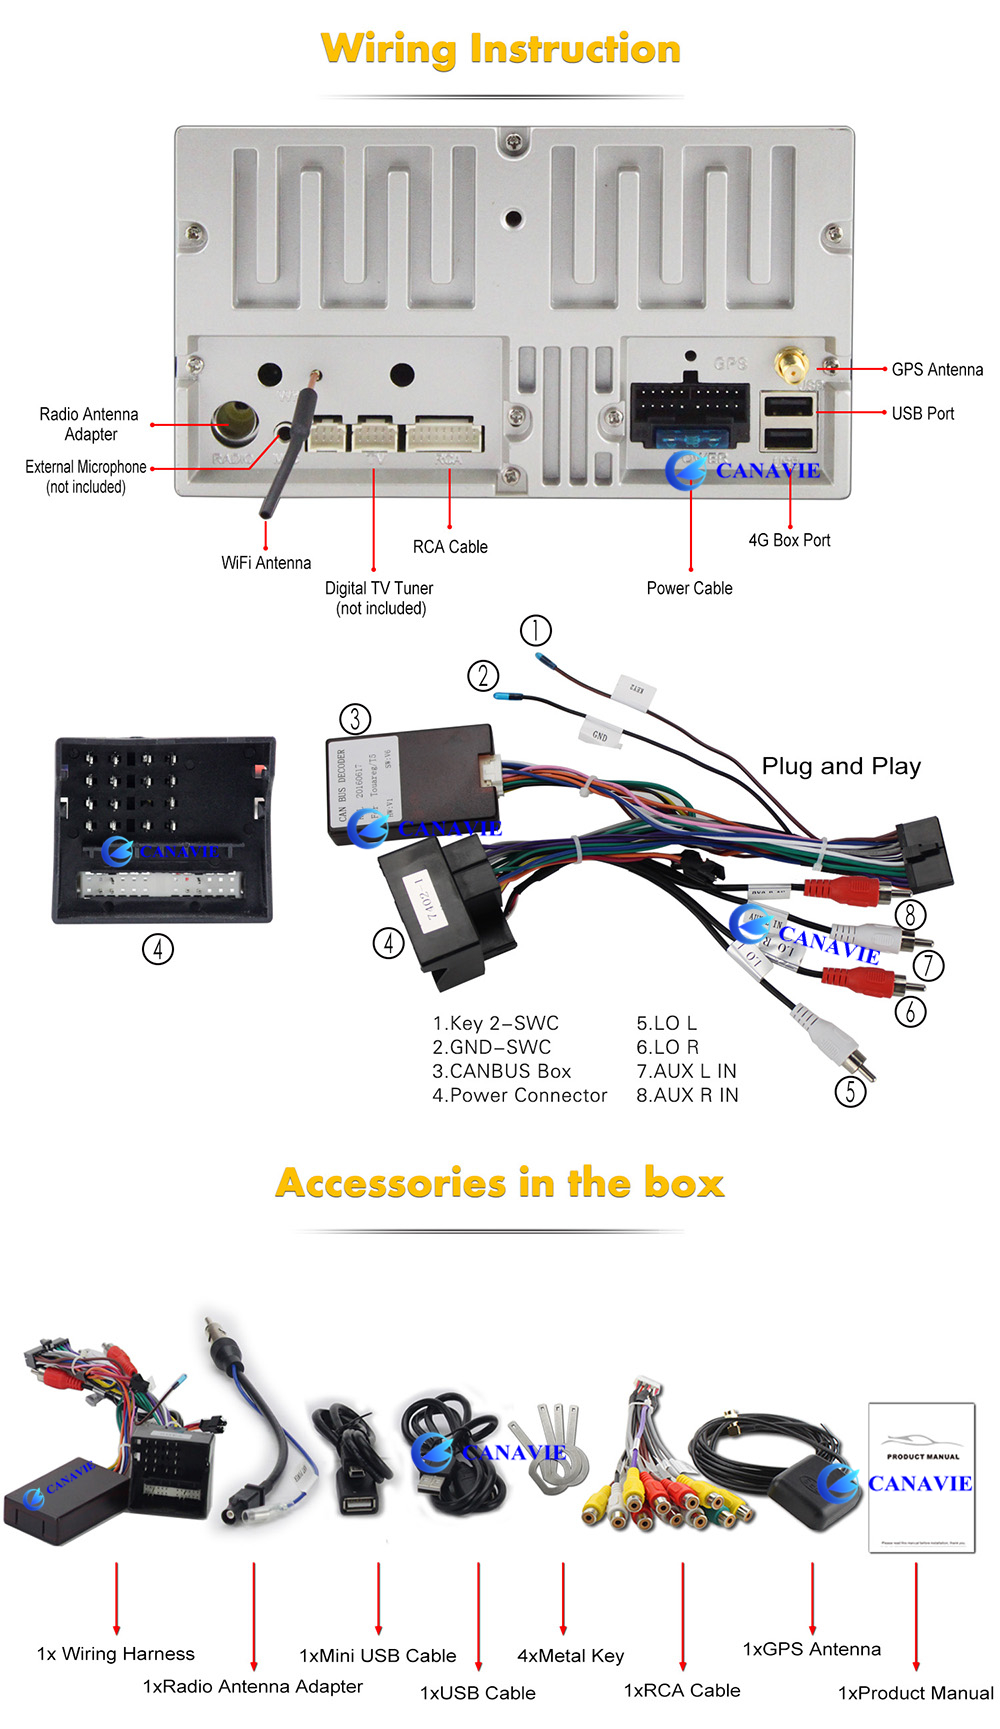 7 Octa Core Android 60 Autoradio Headunit Head Unit Stereo Car Oem Usb Hub Mini Port Pcb Circuit Board Buy Minimini Attention The Photos Above Are Used For Advertising Only Real Image Of This Item Is Subject To Final Order Your Confirmend Thank You In Advance